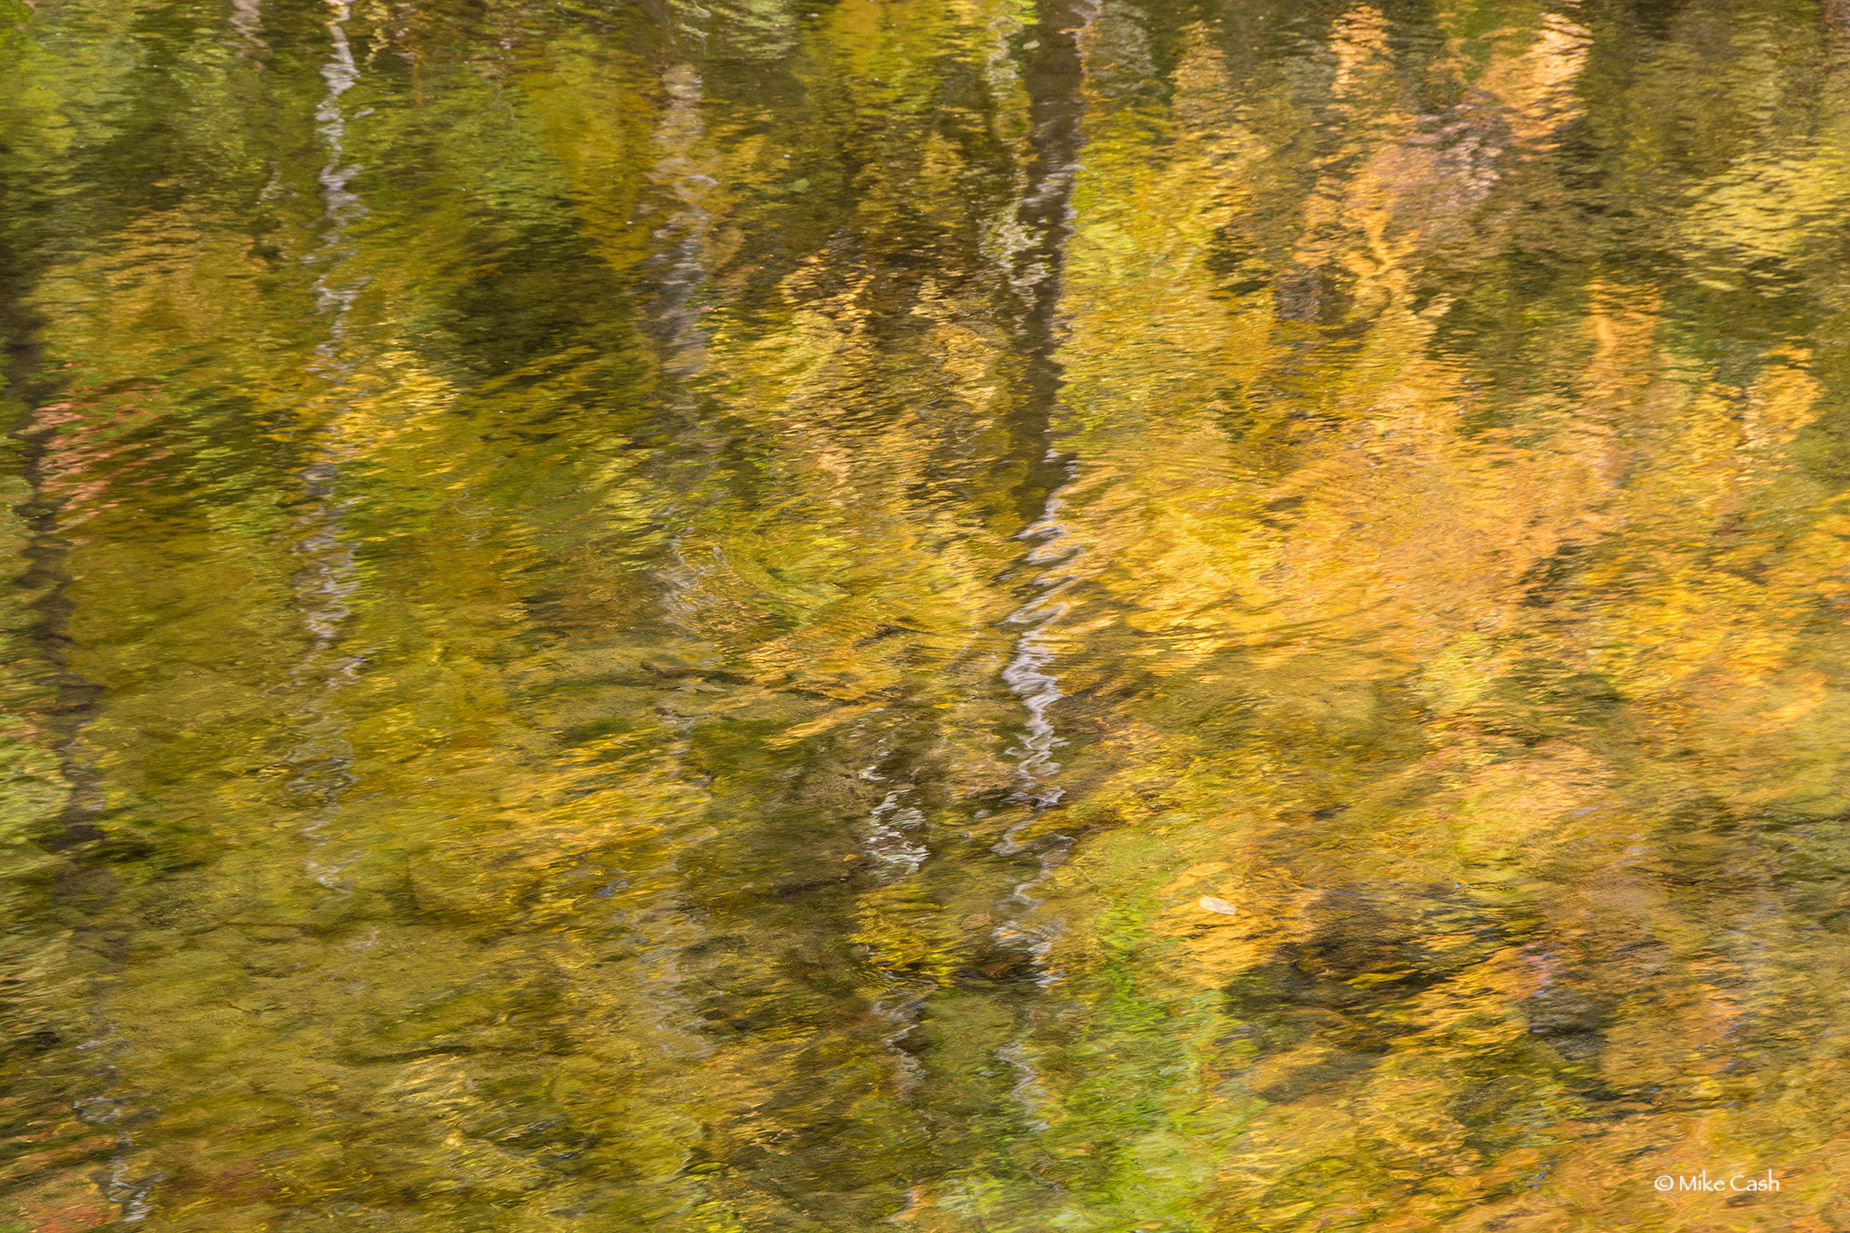 A reflection of Fall.